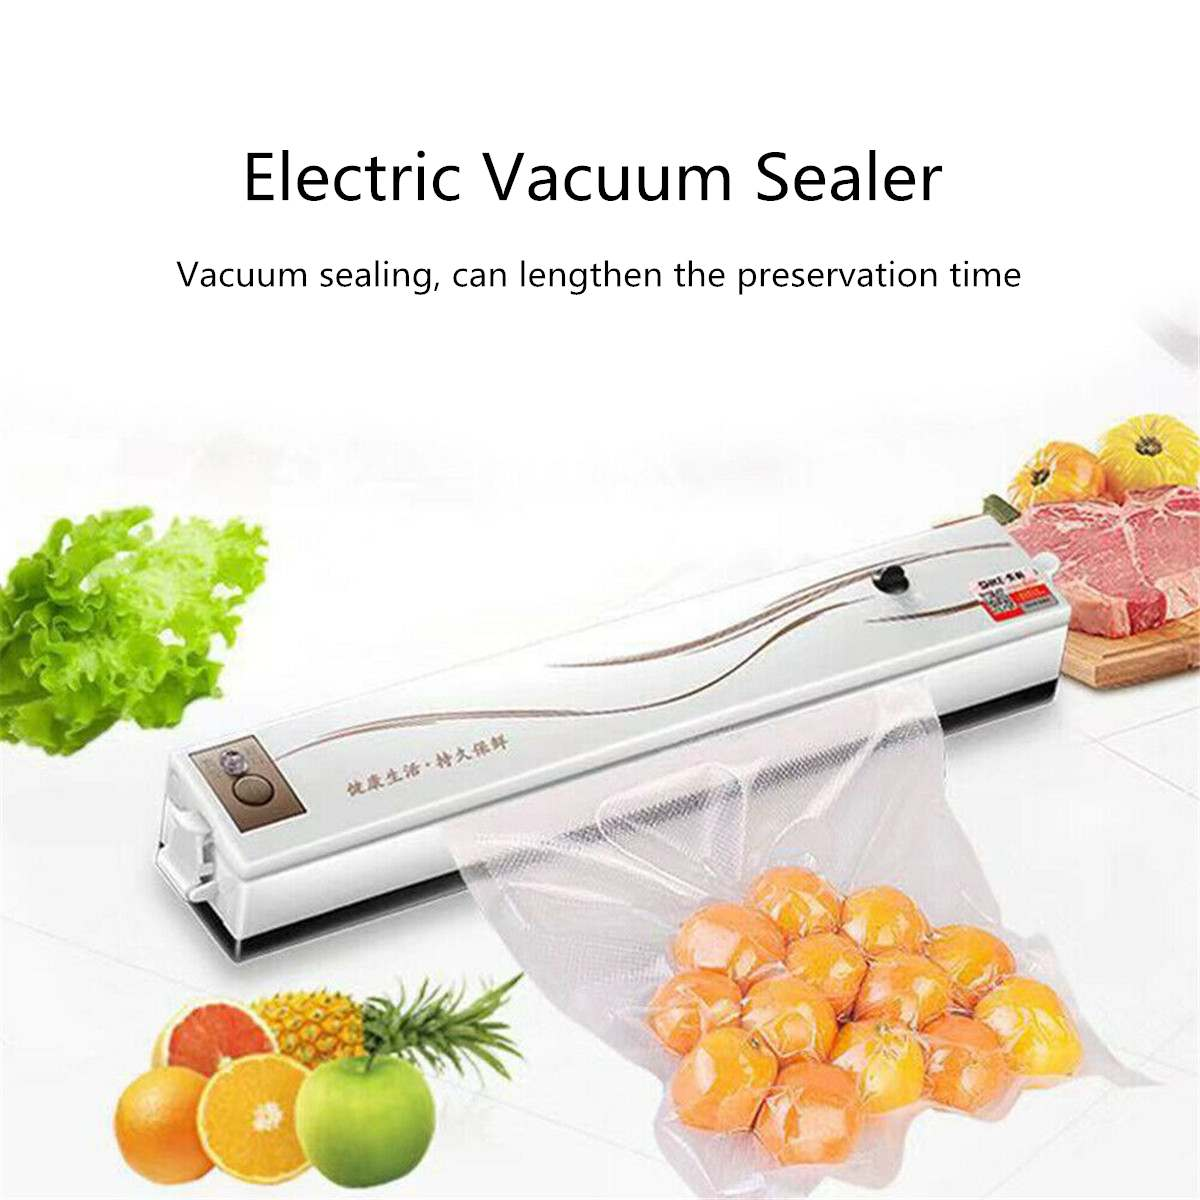 Electric Food Vacuum Sealer Packaging Machine 220V Vaccum Packer Vacuum Sealing Portable Kitchen Home Preservation Machine WhiteElectric Food Vacuum Sealer Packaging Machine 220V Vaccum Packer Vacuum Sealing Portable Kitchen Home Preservation Machine White